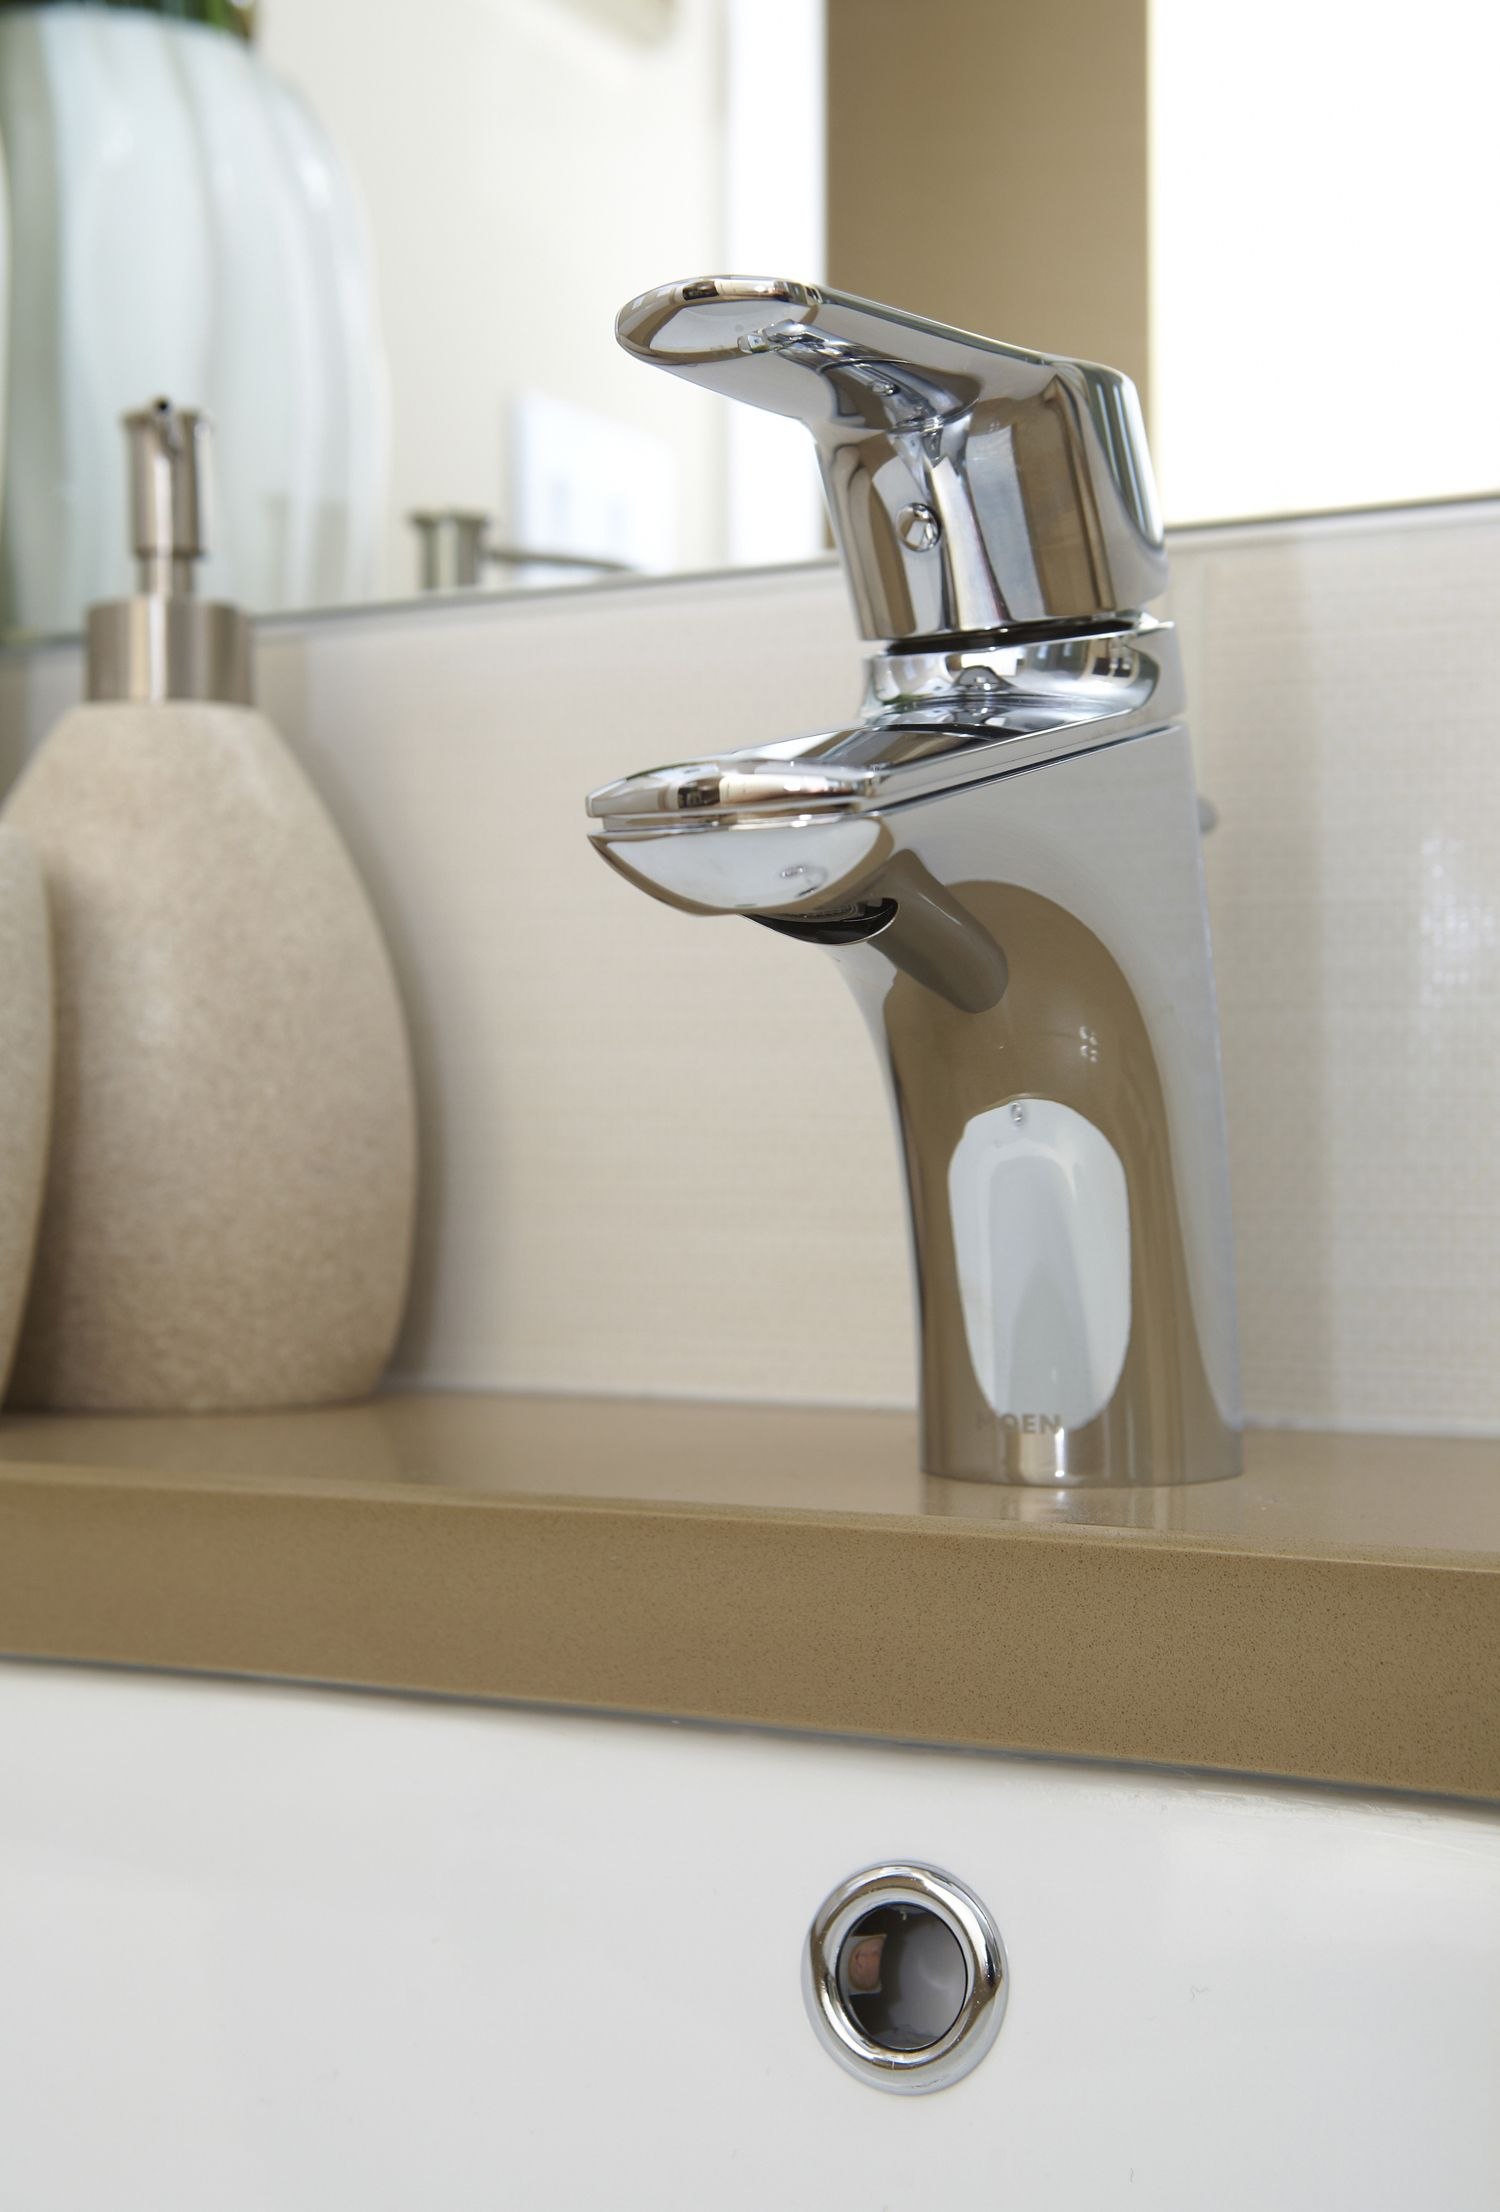 Bathroom Tap Handle   Trico Homes   Check out the new homes built by www Bathroom Tap Handle   Trico Homes   Check out the new homes built  . Discount Bathroom Fixtures Calgary. Home Design Ideas